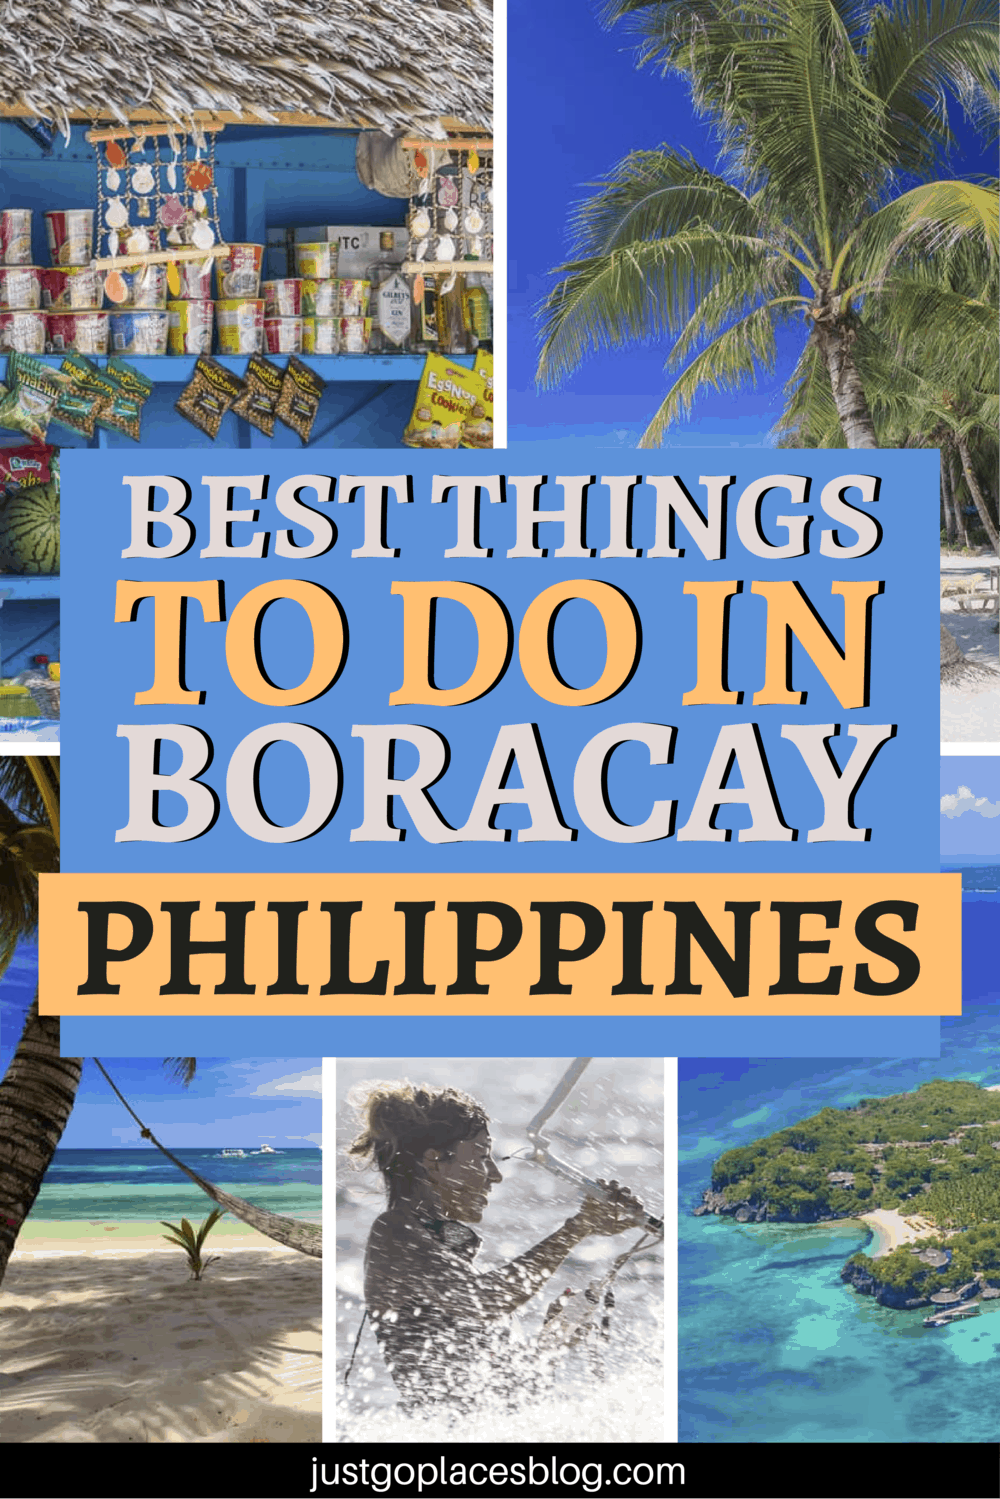 Best Things To Do in Boracay Philippines